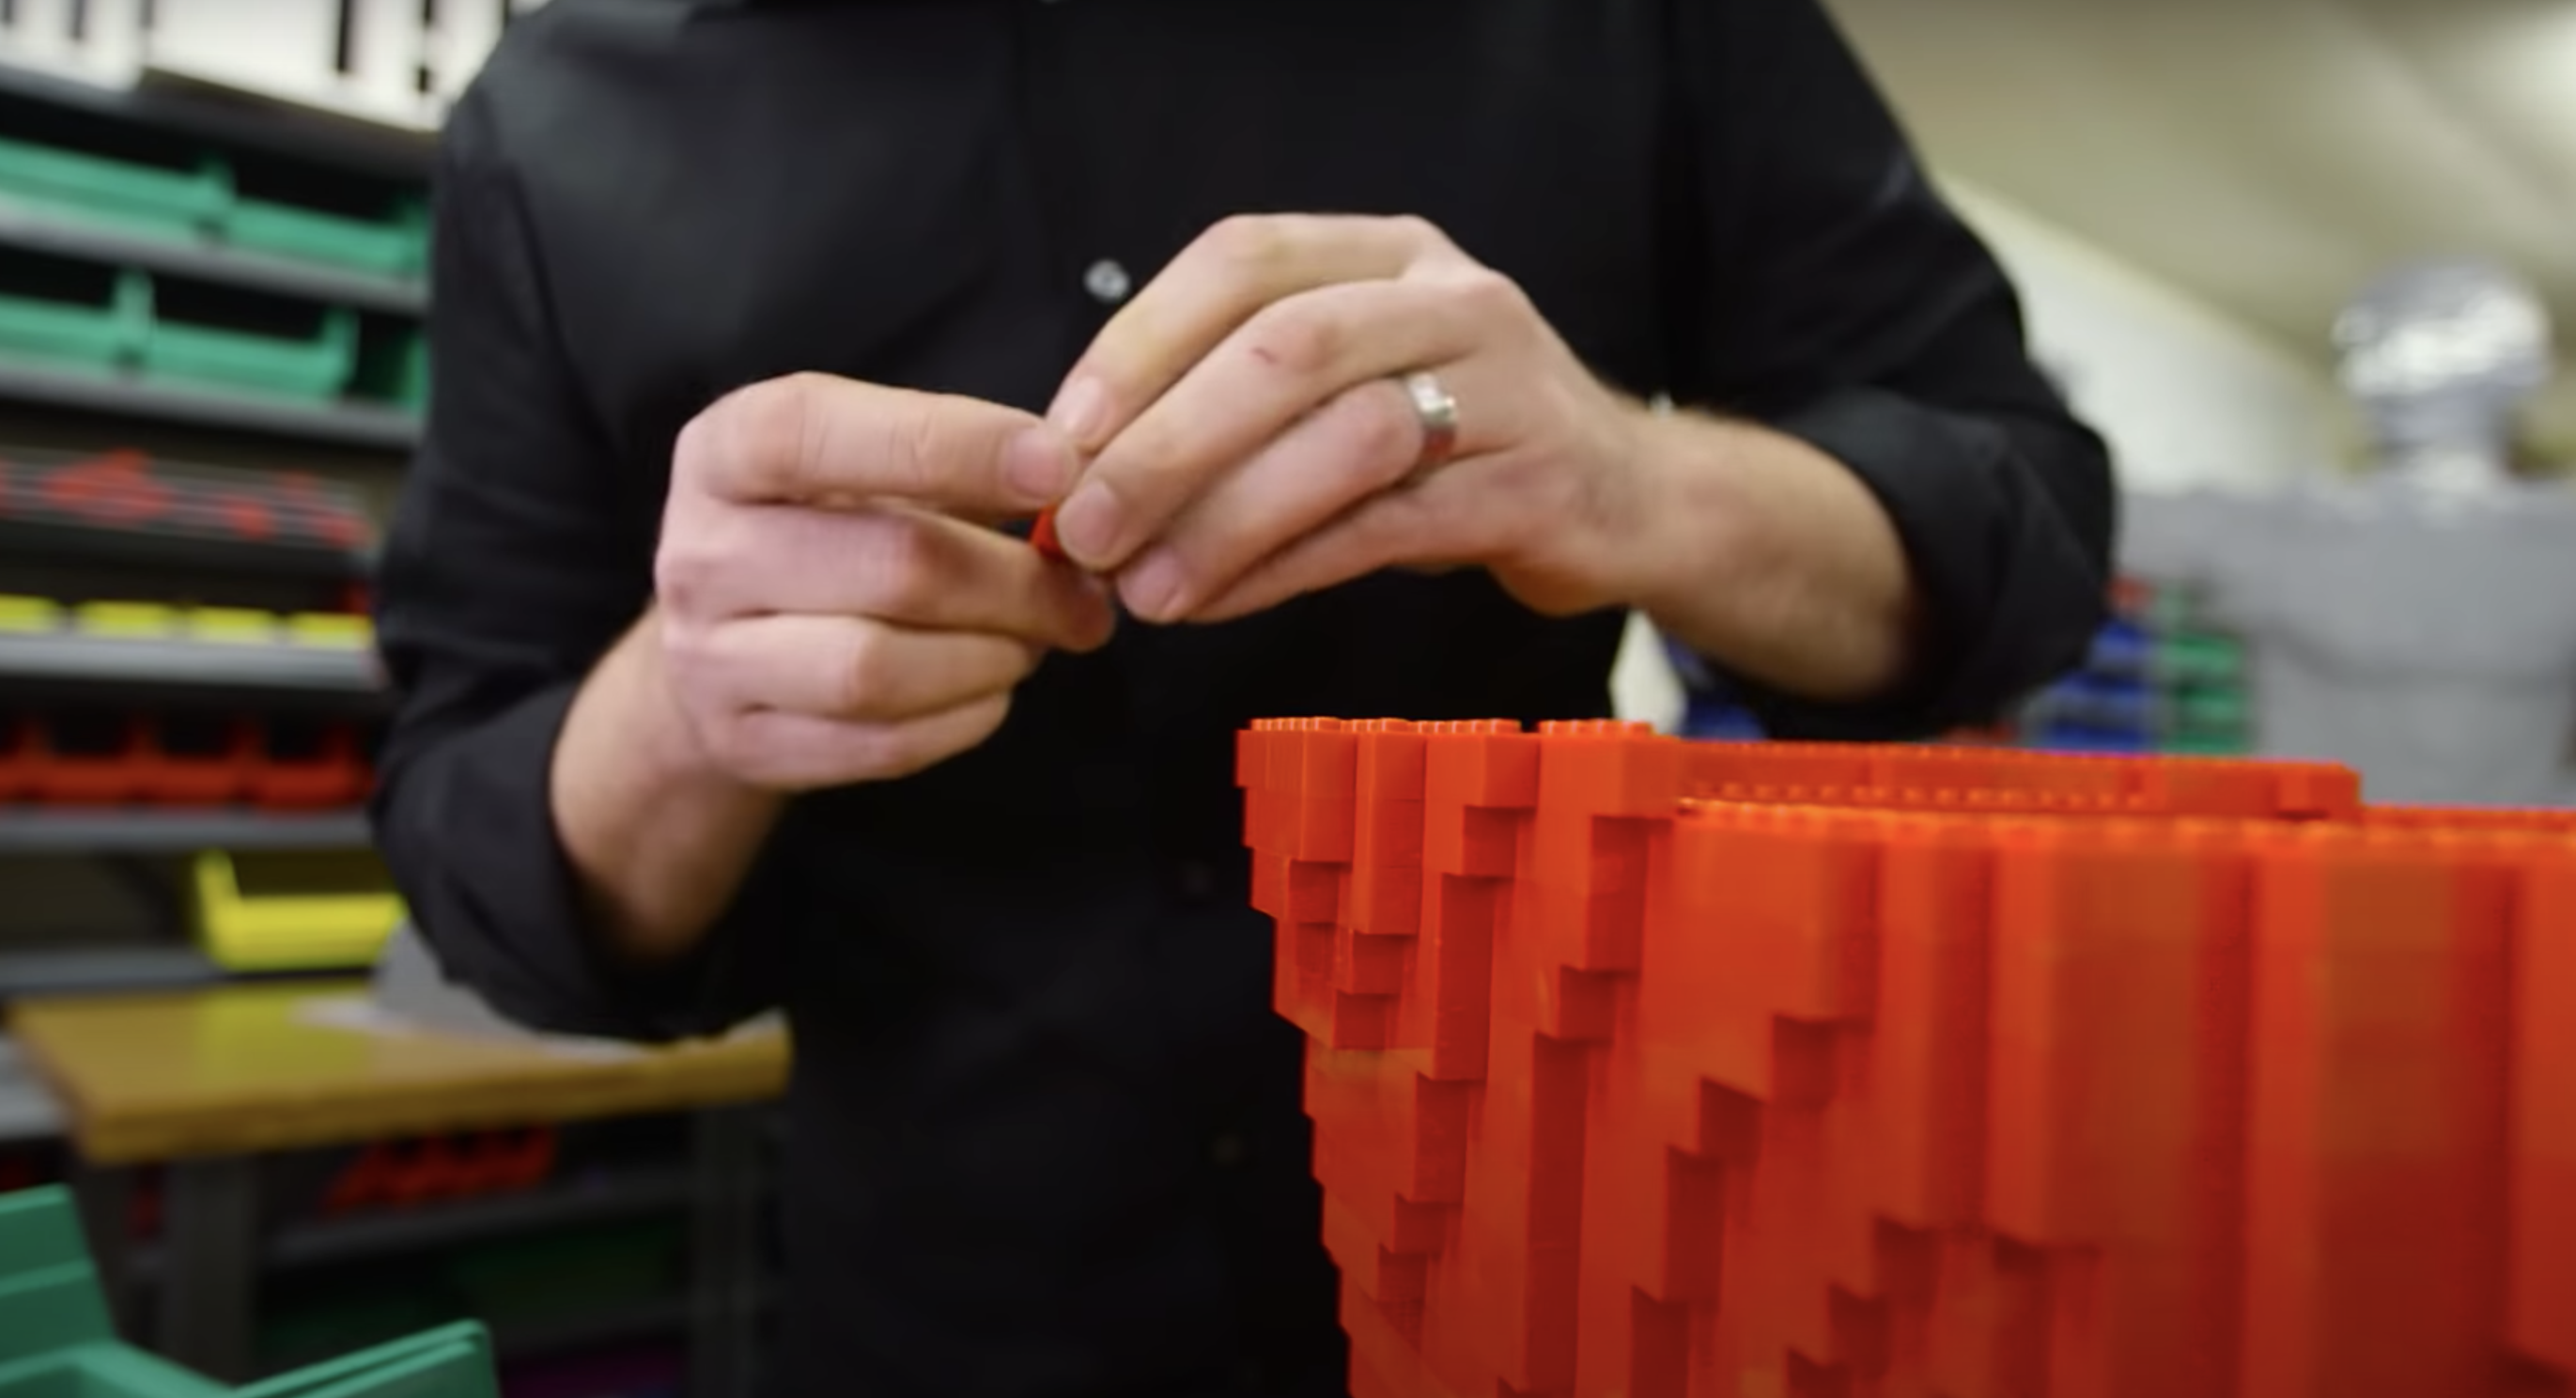 A person putting together a Lego structure